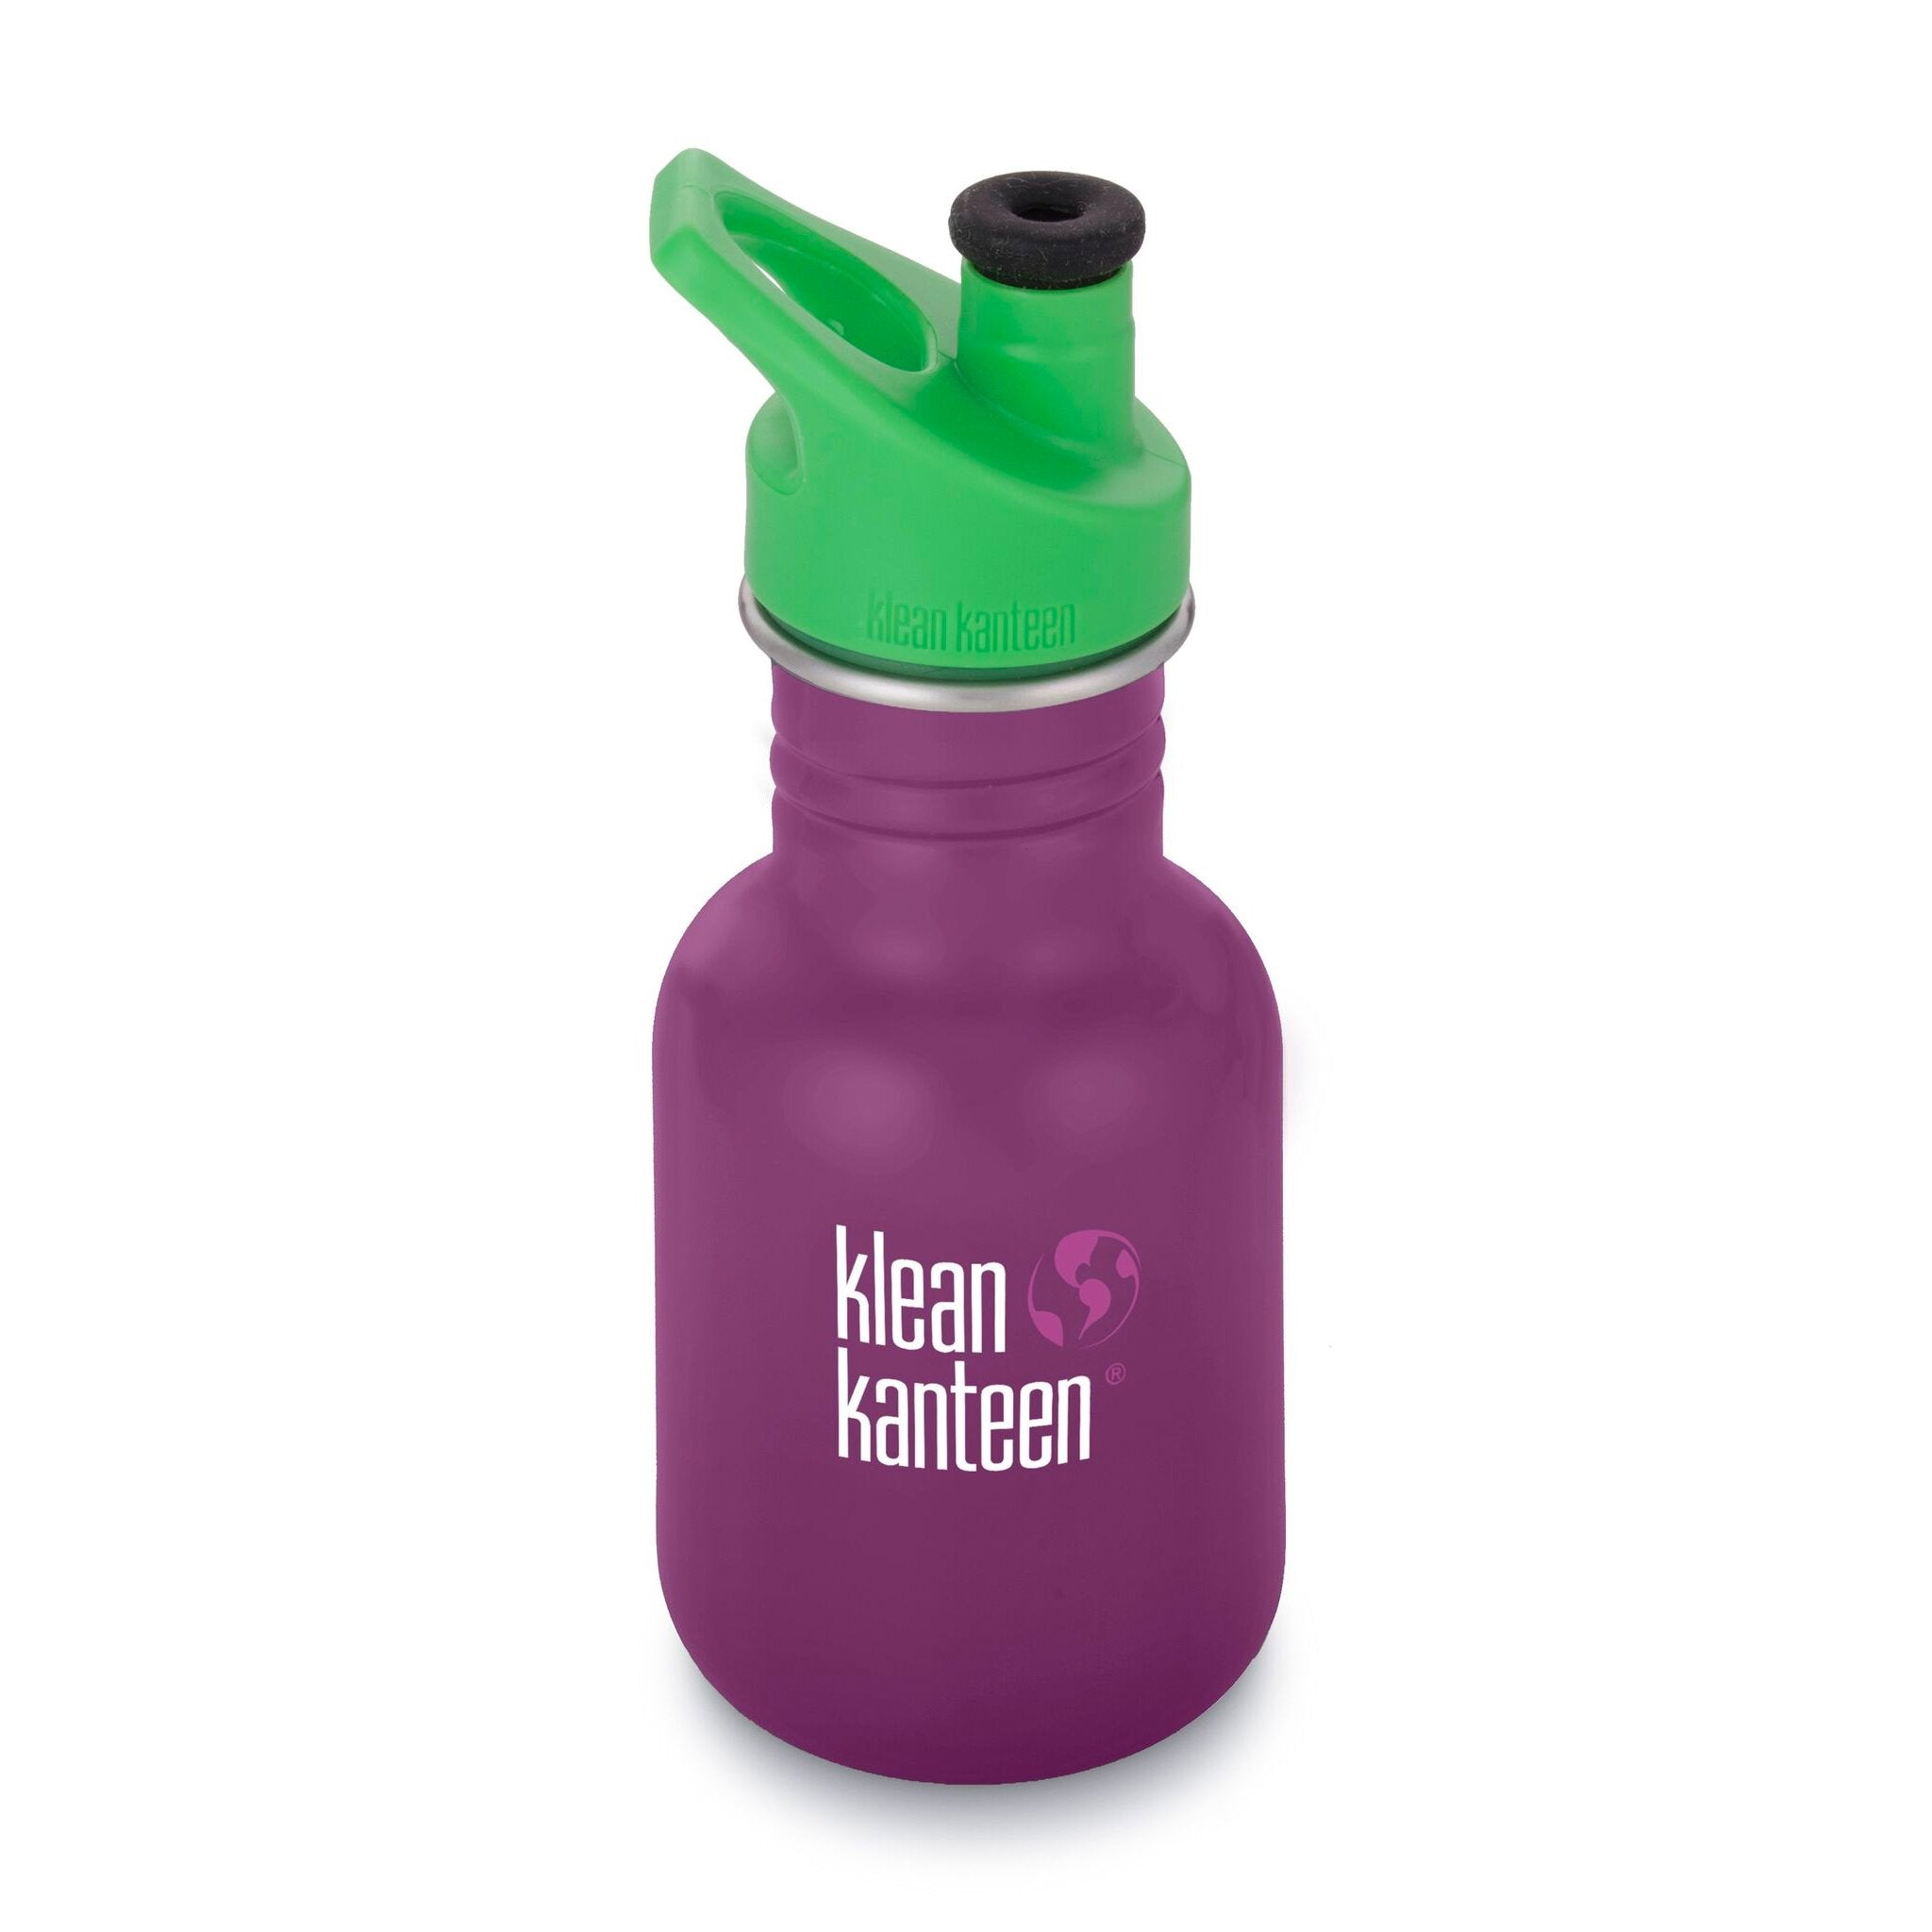 Klean Kanteen Kid Kanteen 355ml 12oz Stainless Steel Bottle Klean Kanteen Sippy Cups Sport / Winter Plum at Little Earth Nest Eco Shop